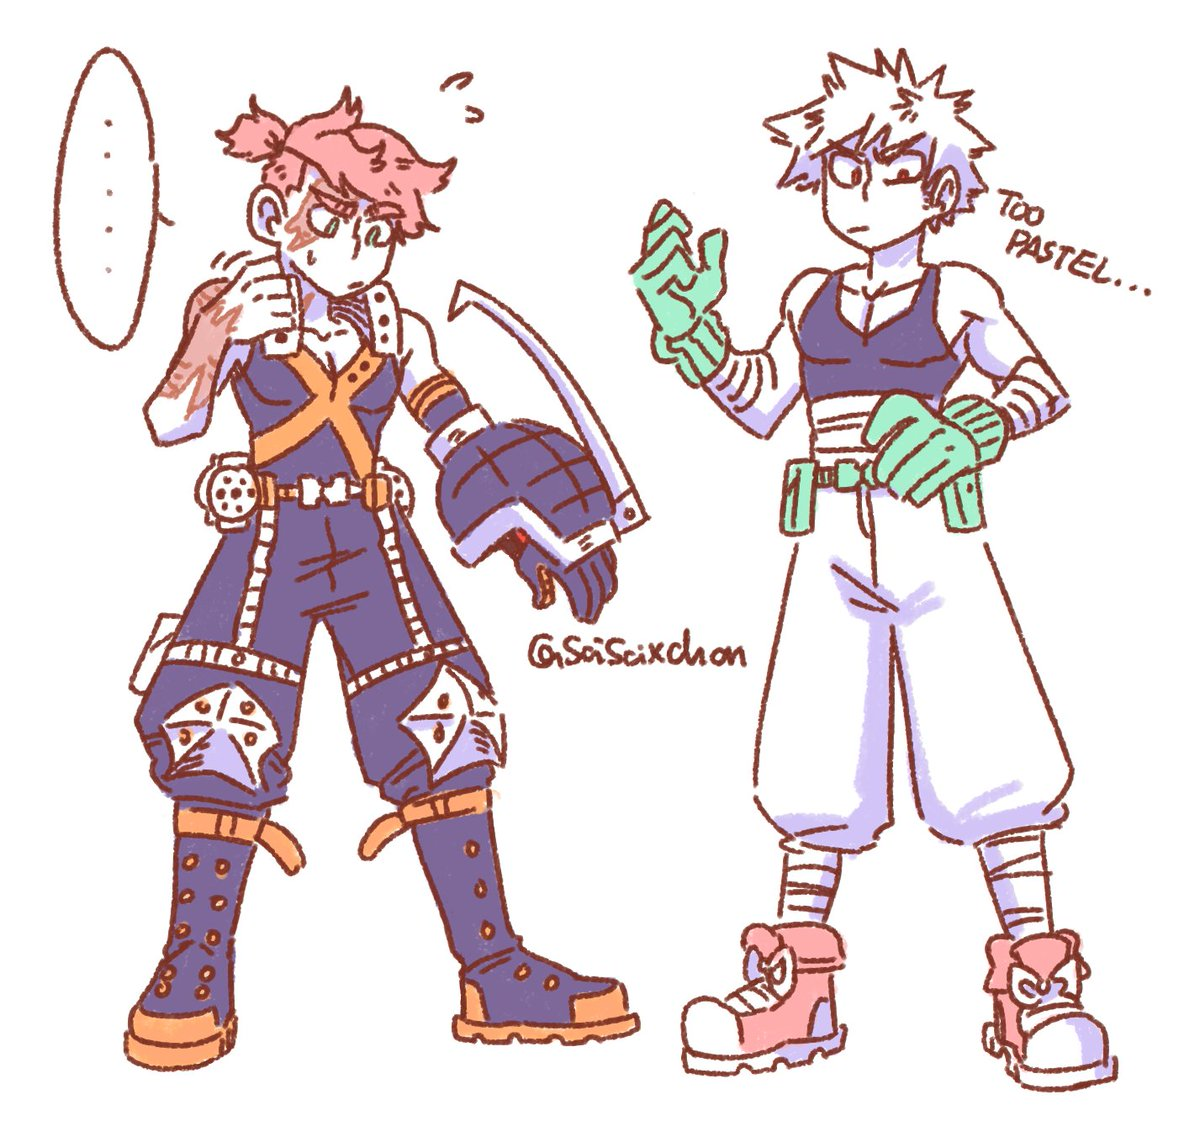 Bom and Bakugou in each other&#39;s clothes i don&#39;t think&#39;d like it very much lol.... (also, Bom doesn&#39;t like metal things around his neck) <br>http://pic.twitter.com/pJ7YltCAr4